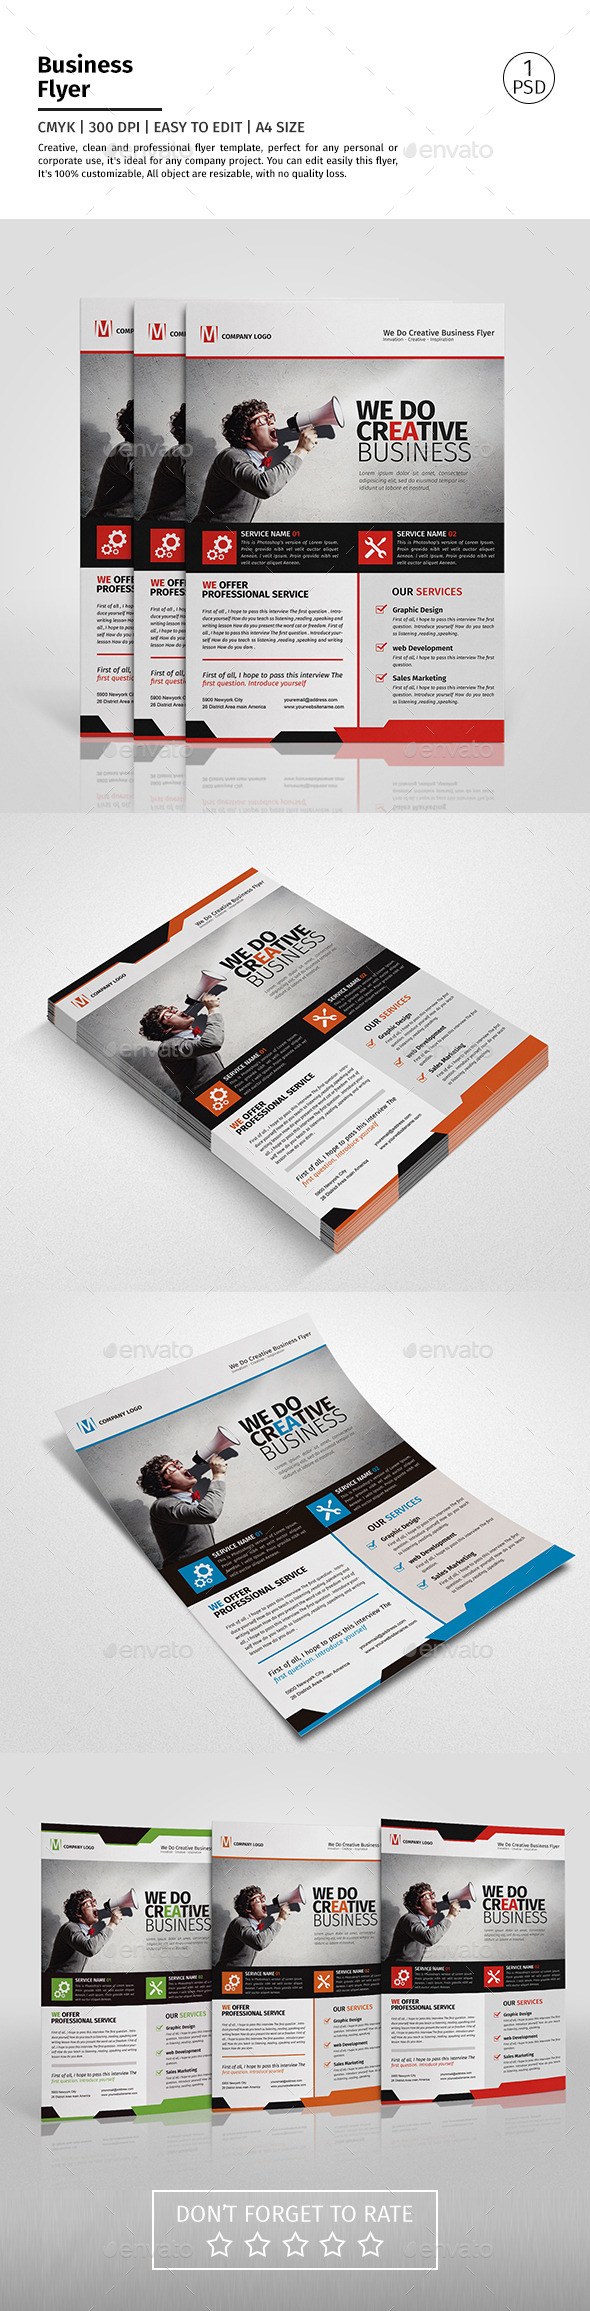 A4 Corporate Business Flyer Template Vol 07 - Corporate Flyers